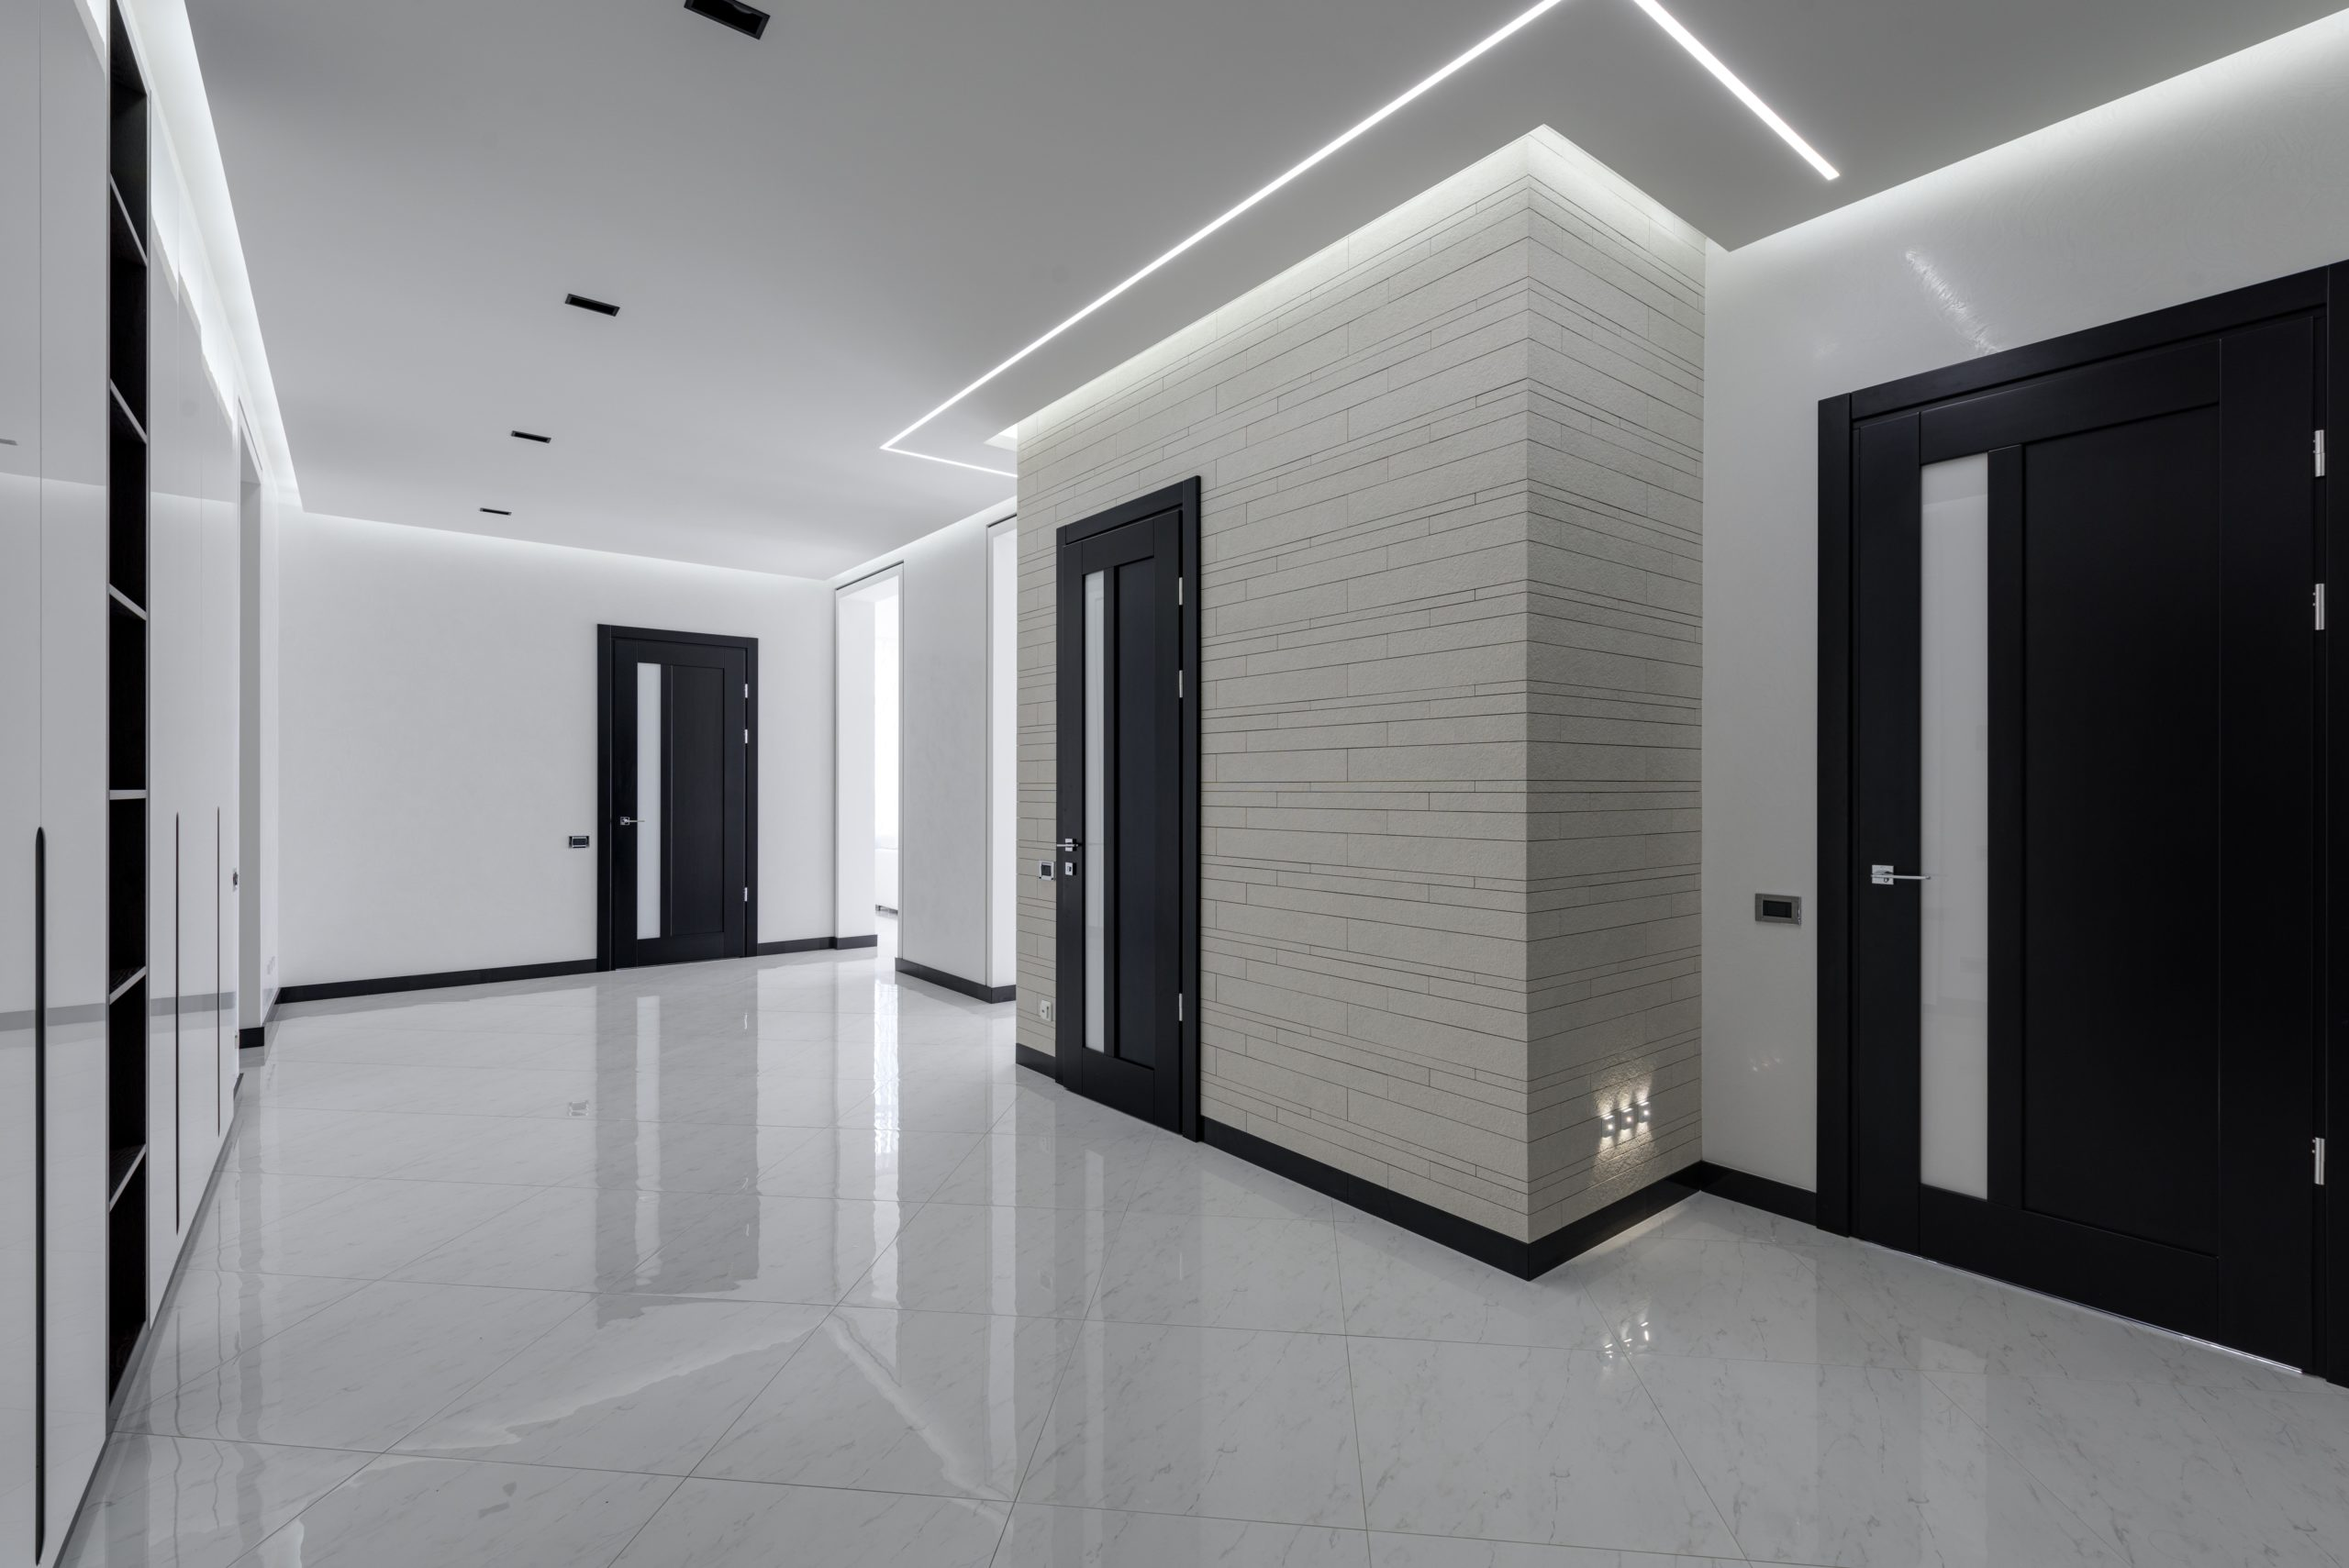 3 Things to Consider When Choosing Commercial Flooring